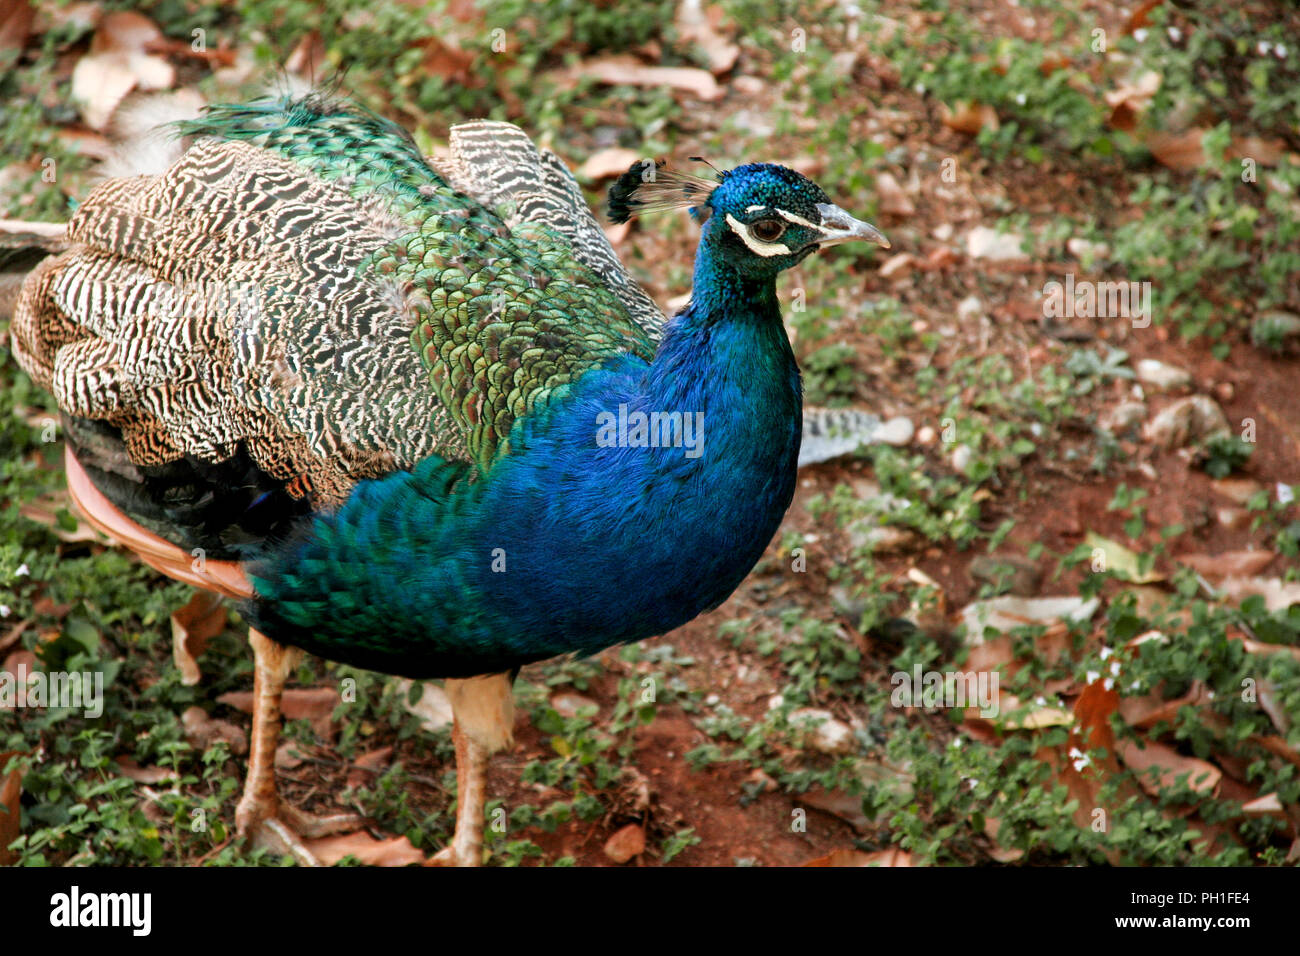 Peacock bird in nature. A beautiful bird of paradise peacock in the garden the natural environment. - Stock Image